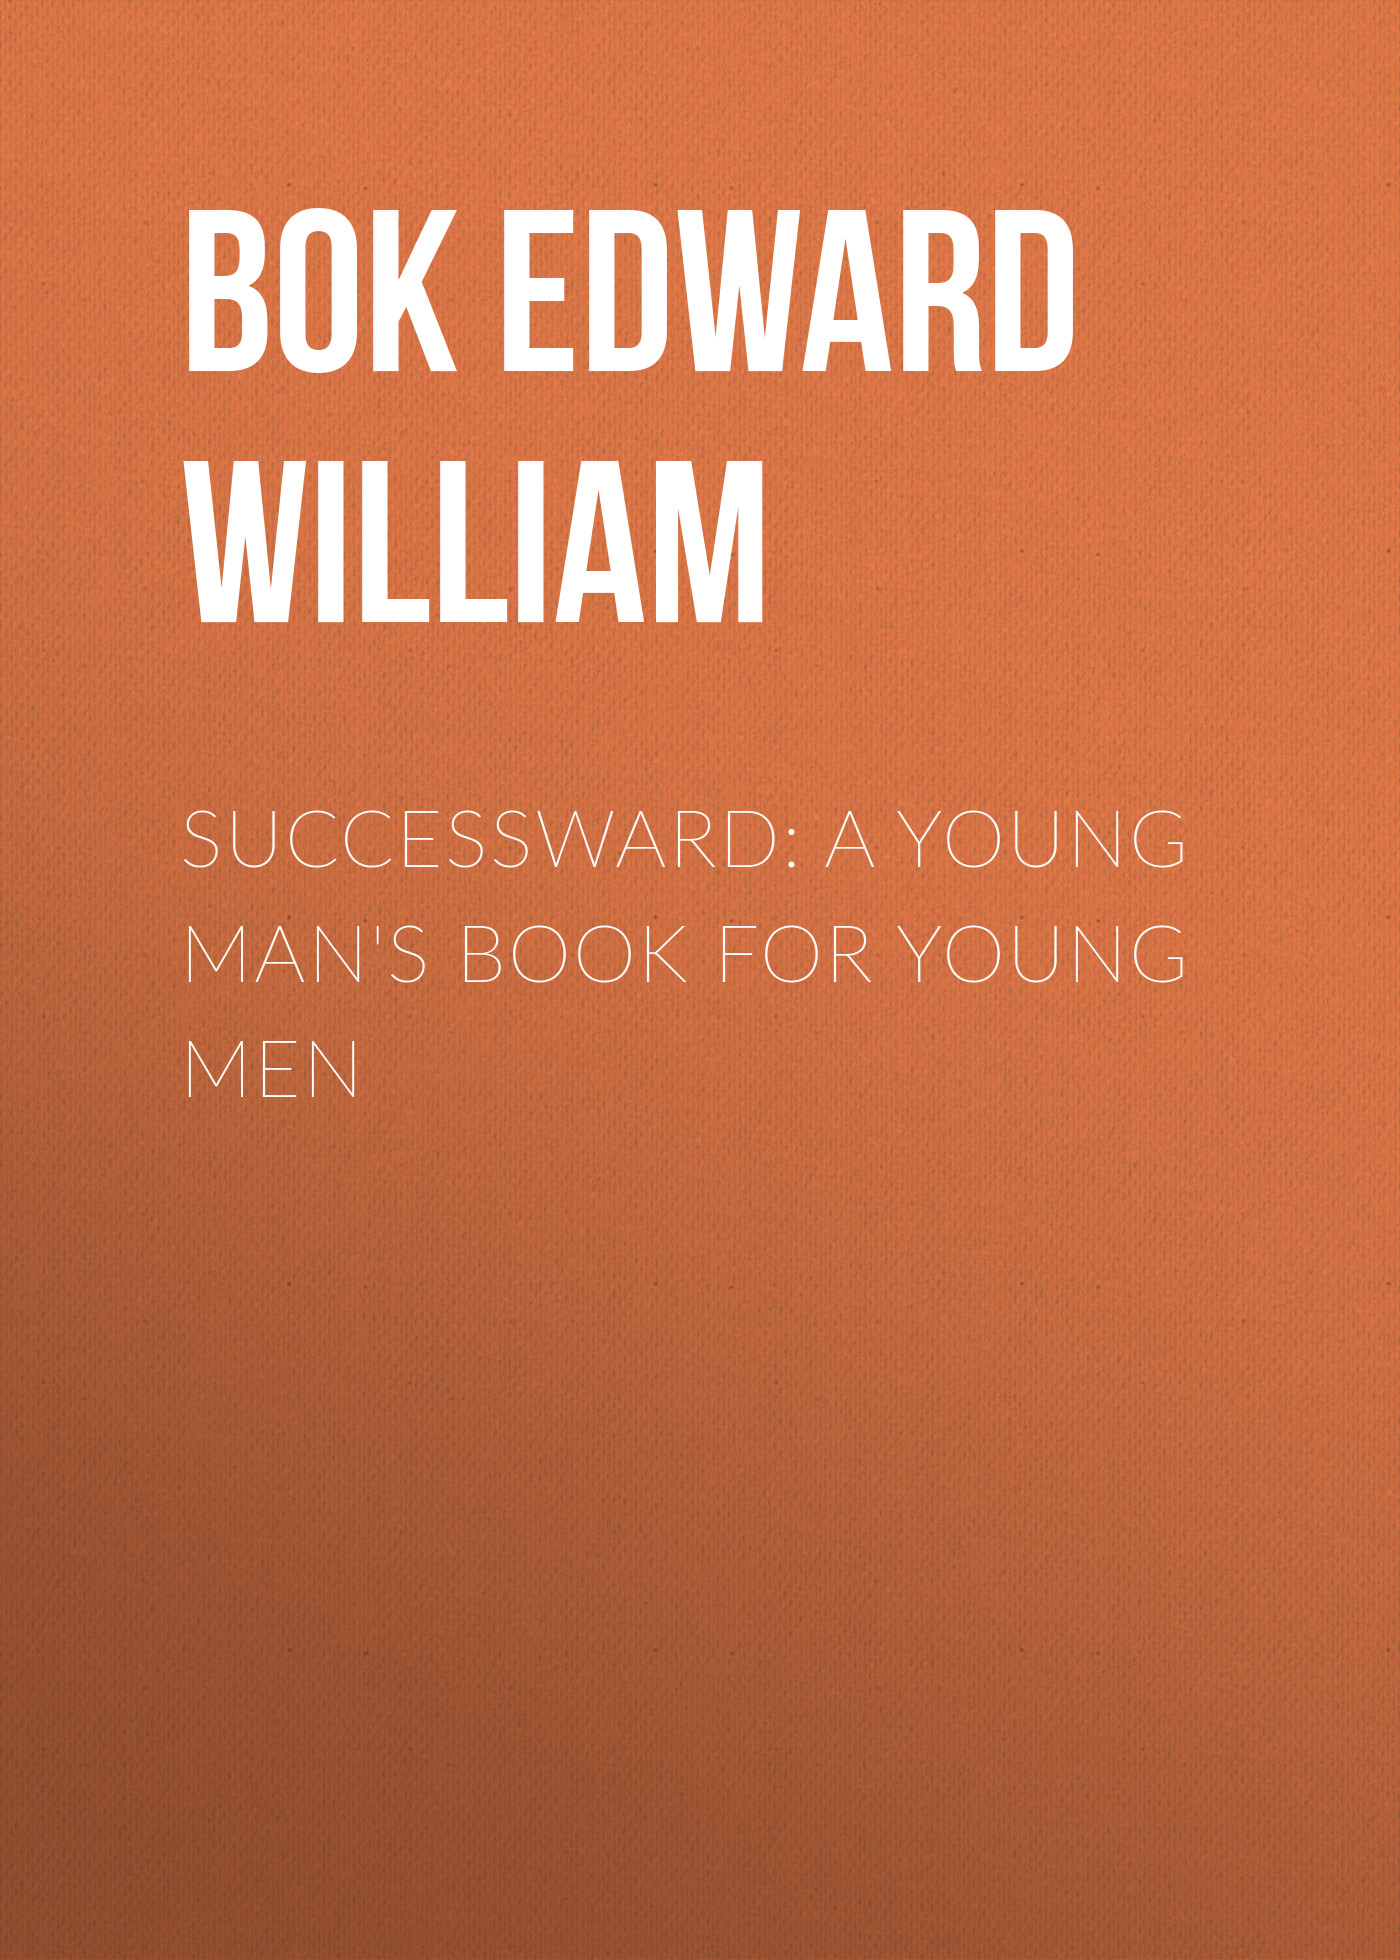 Bok Edward William Successward: A Young Man's Book for Young Men цена